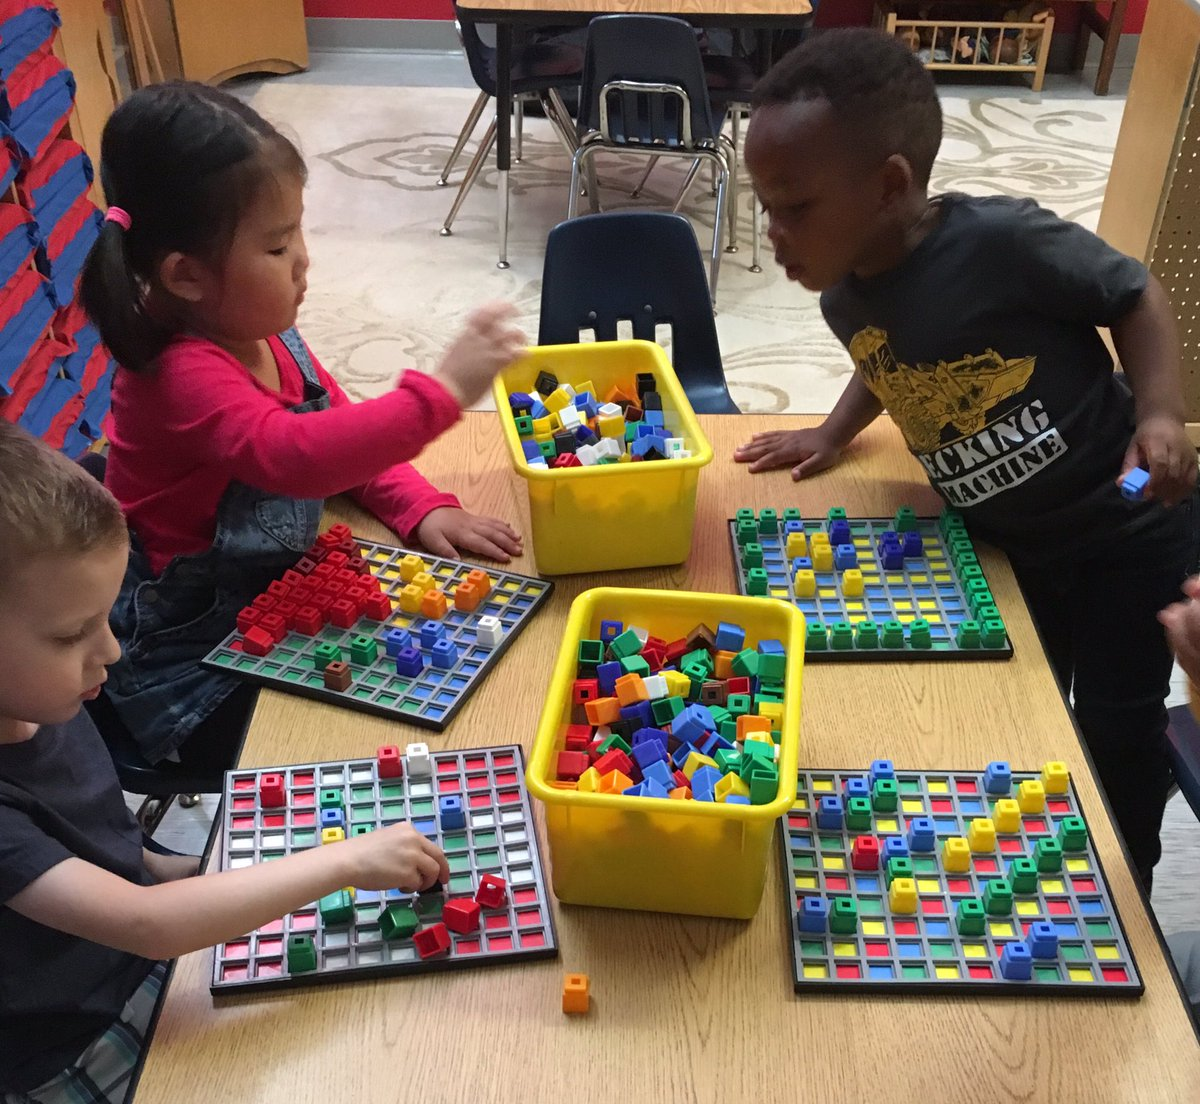 Working hard in Pre-K! <a target='_blank' href='http://twitter.com/APS_EarlyChild'>@APS_EarlyChild</a>  <a target='_blank' href='http://search.twitter.com/search?q=abdrocks'><a target='_blank' href='https://twitter.com/hashtag/abdrocks?src=hash'>#abdrocks</a></a> <a target='_blank' href='http://search.twitter.com/search?q=APSBack2School'><a target='_blank' href='https://twitter.com/hashtag/APSBack2School?src=hash'>#APSBack2School</a></a> <a target='_blank' href='https://t.co/nwOF5WQx3M'>https://t.co/nwOF5WQx3M</a>